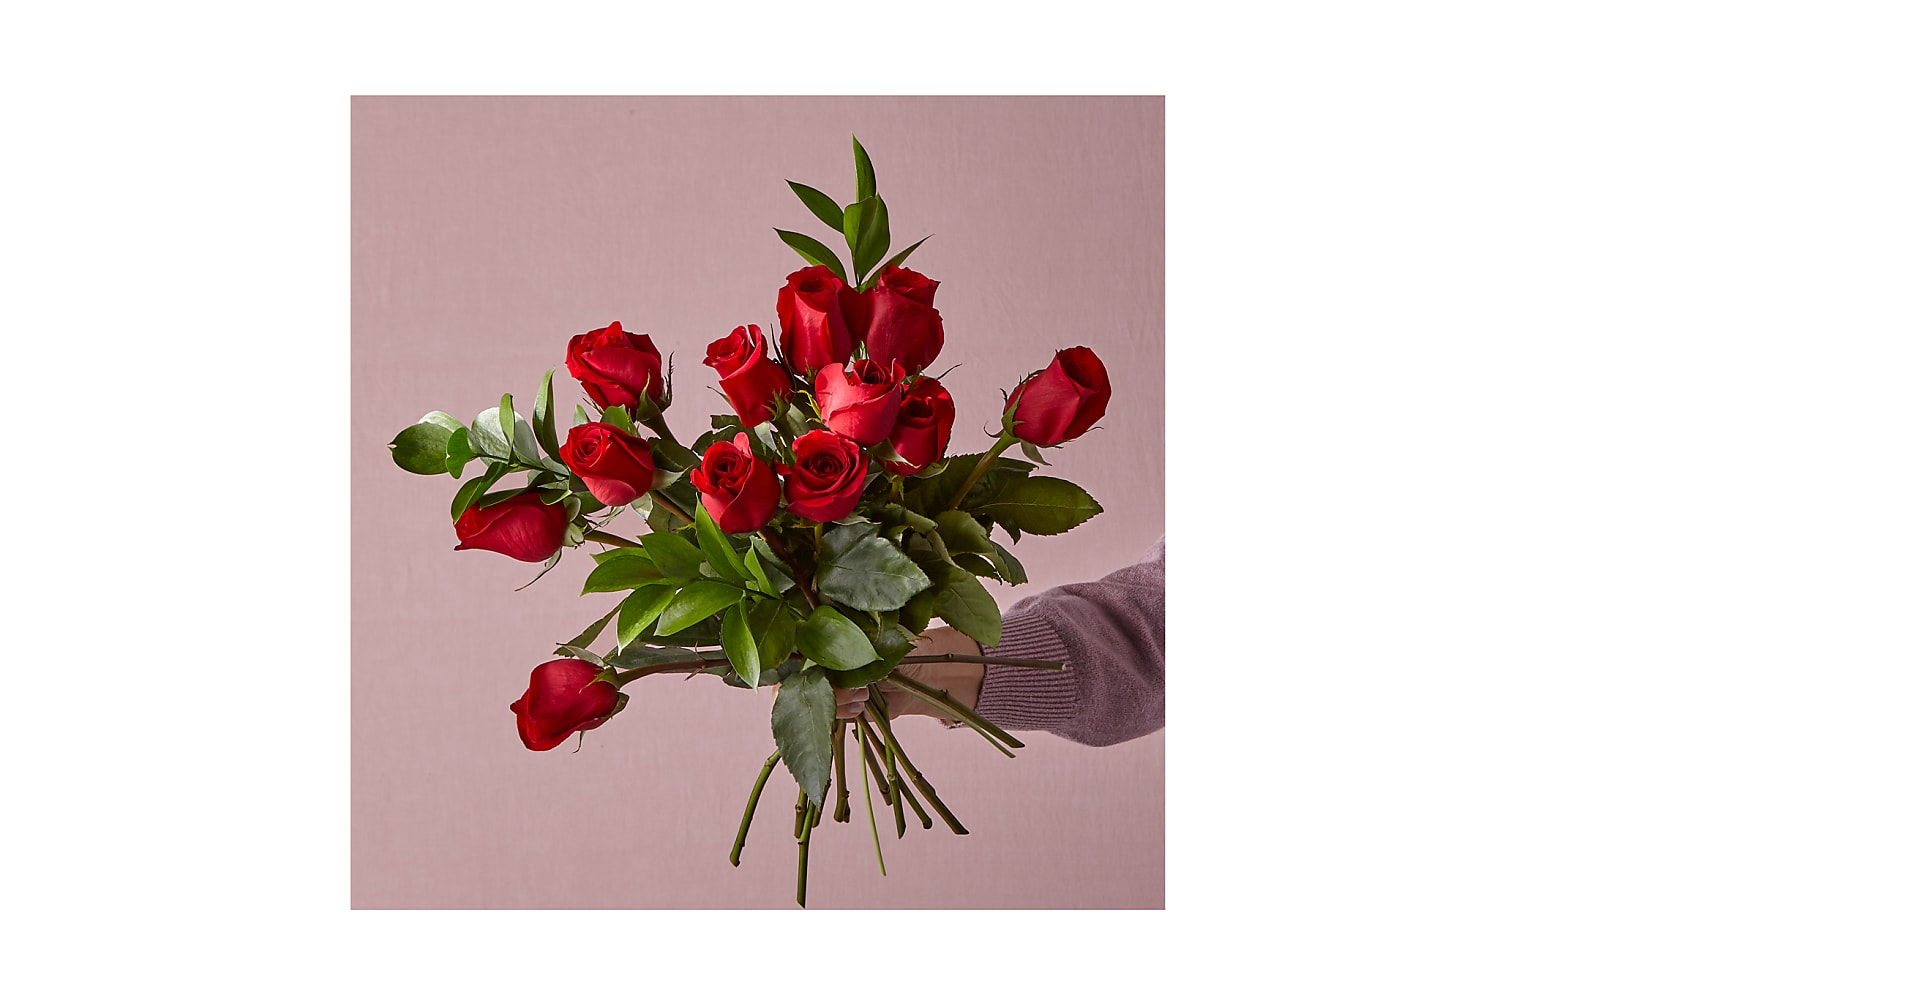 12 Red Roses, No Vase - Image 1 Of 2